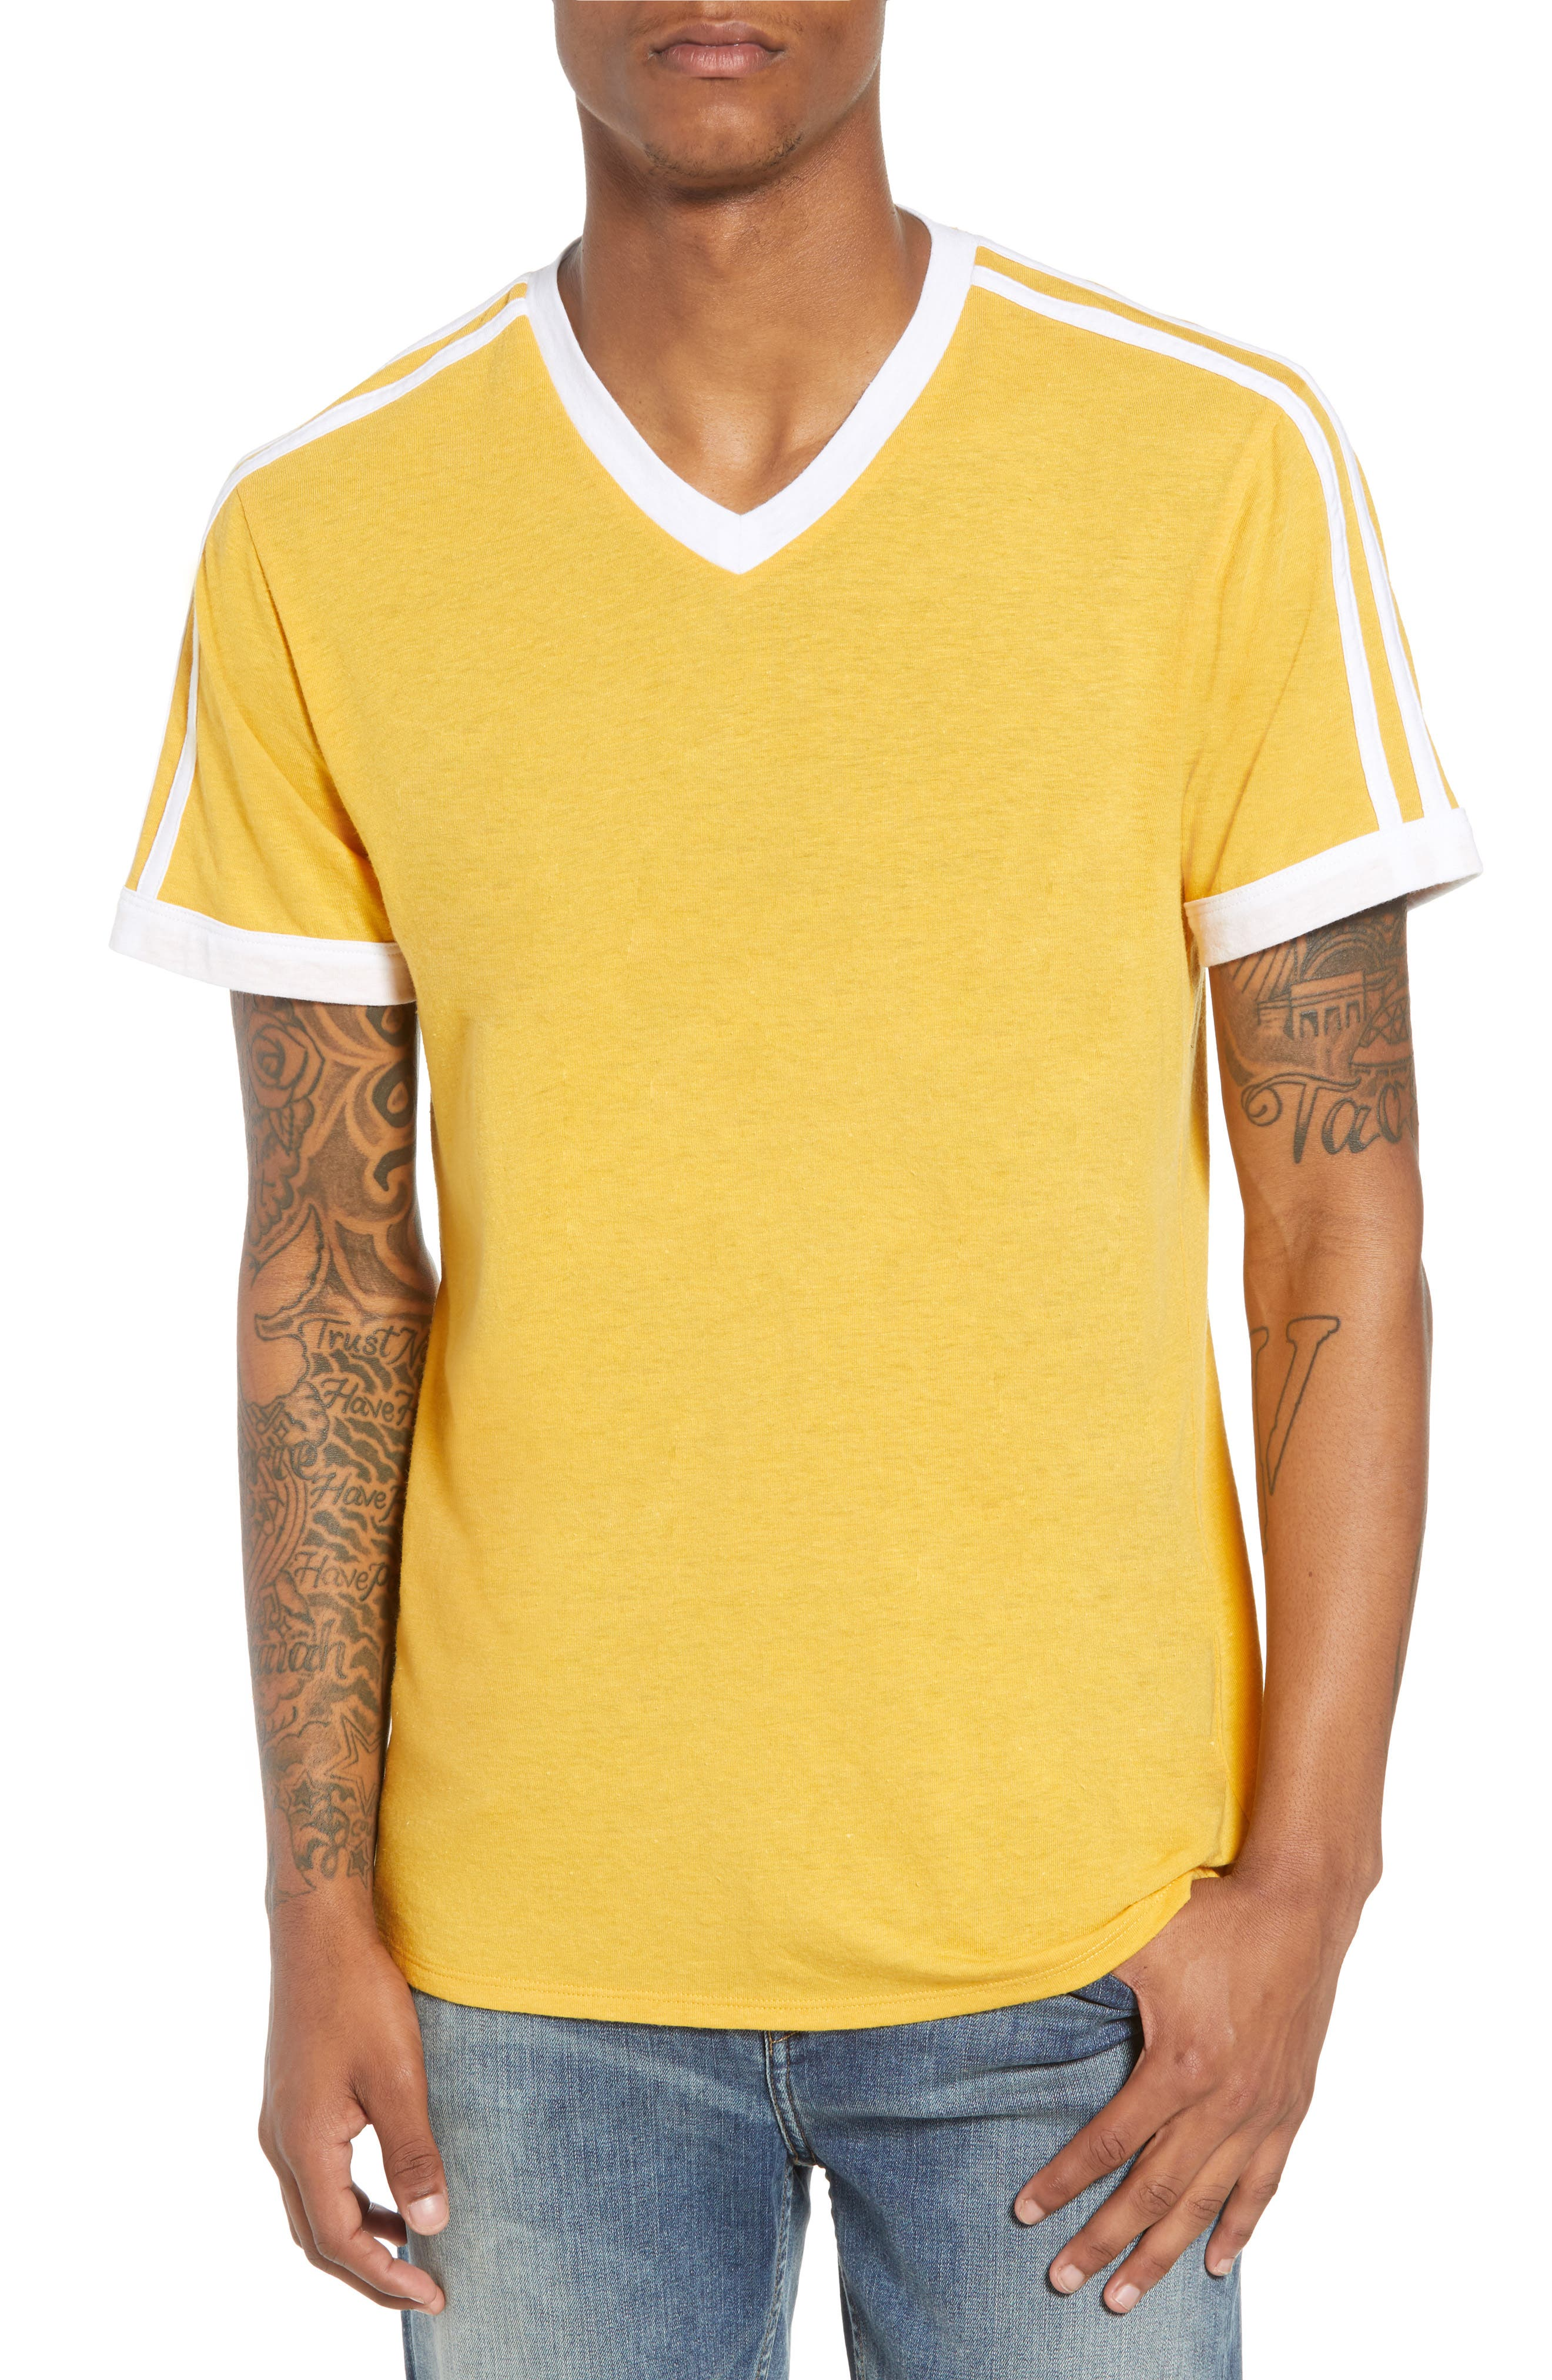 Vintage Athletic V-Neck T-Shirt,                         Main,                         color, Yellow Mineral / White Stripe